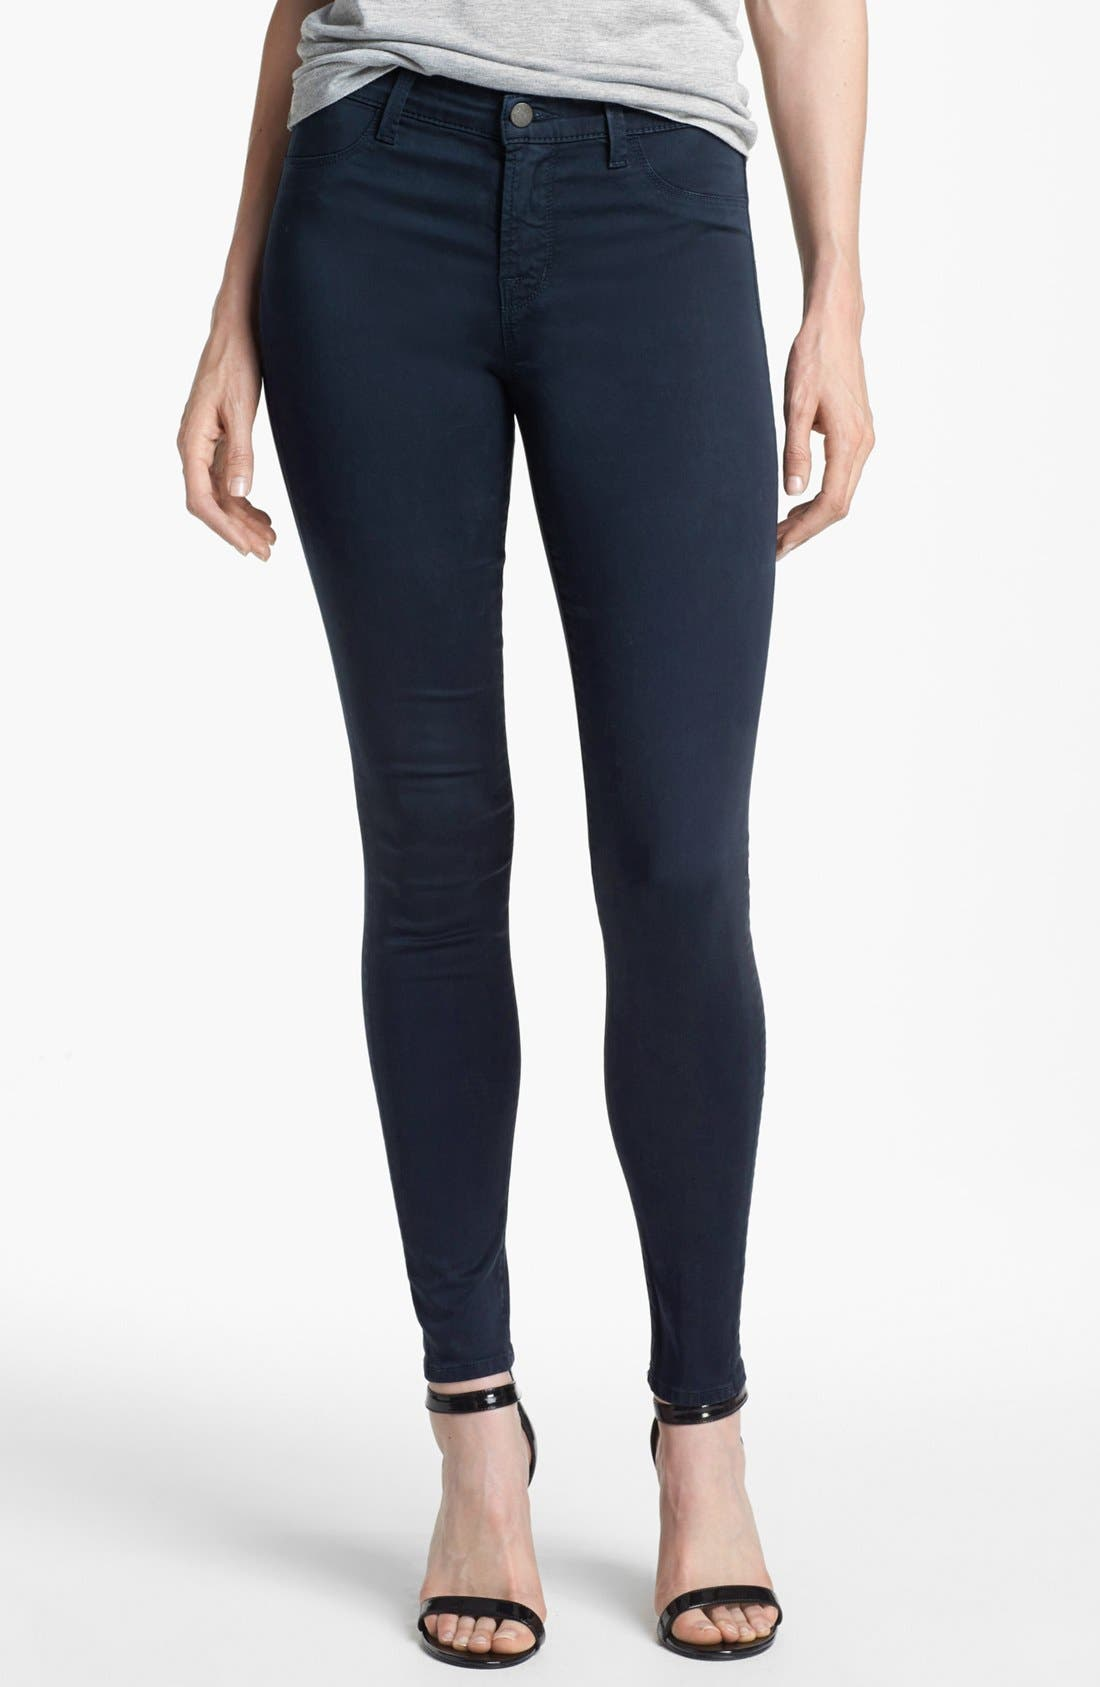 Alternate Image 1 Selected - J Brand '485' Mid Rise Super Skinny Jeans (Carbon Blue)